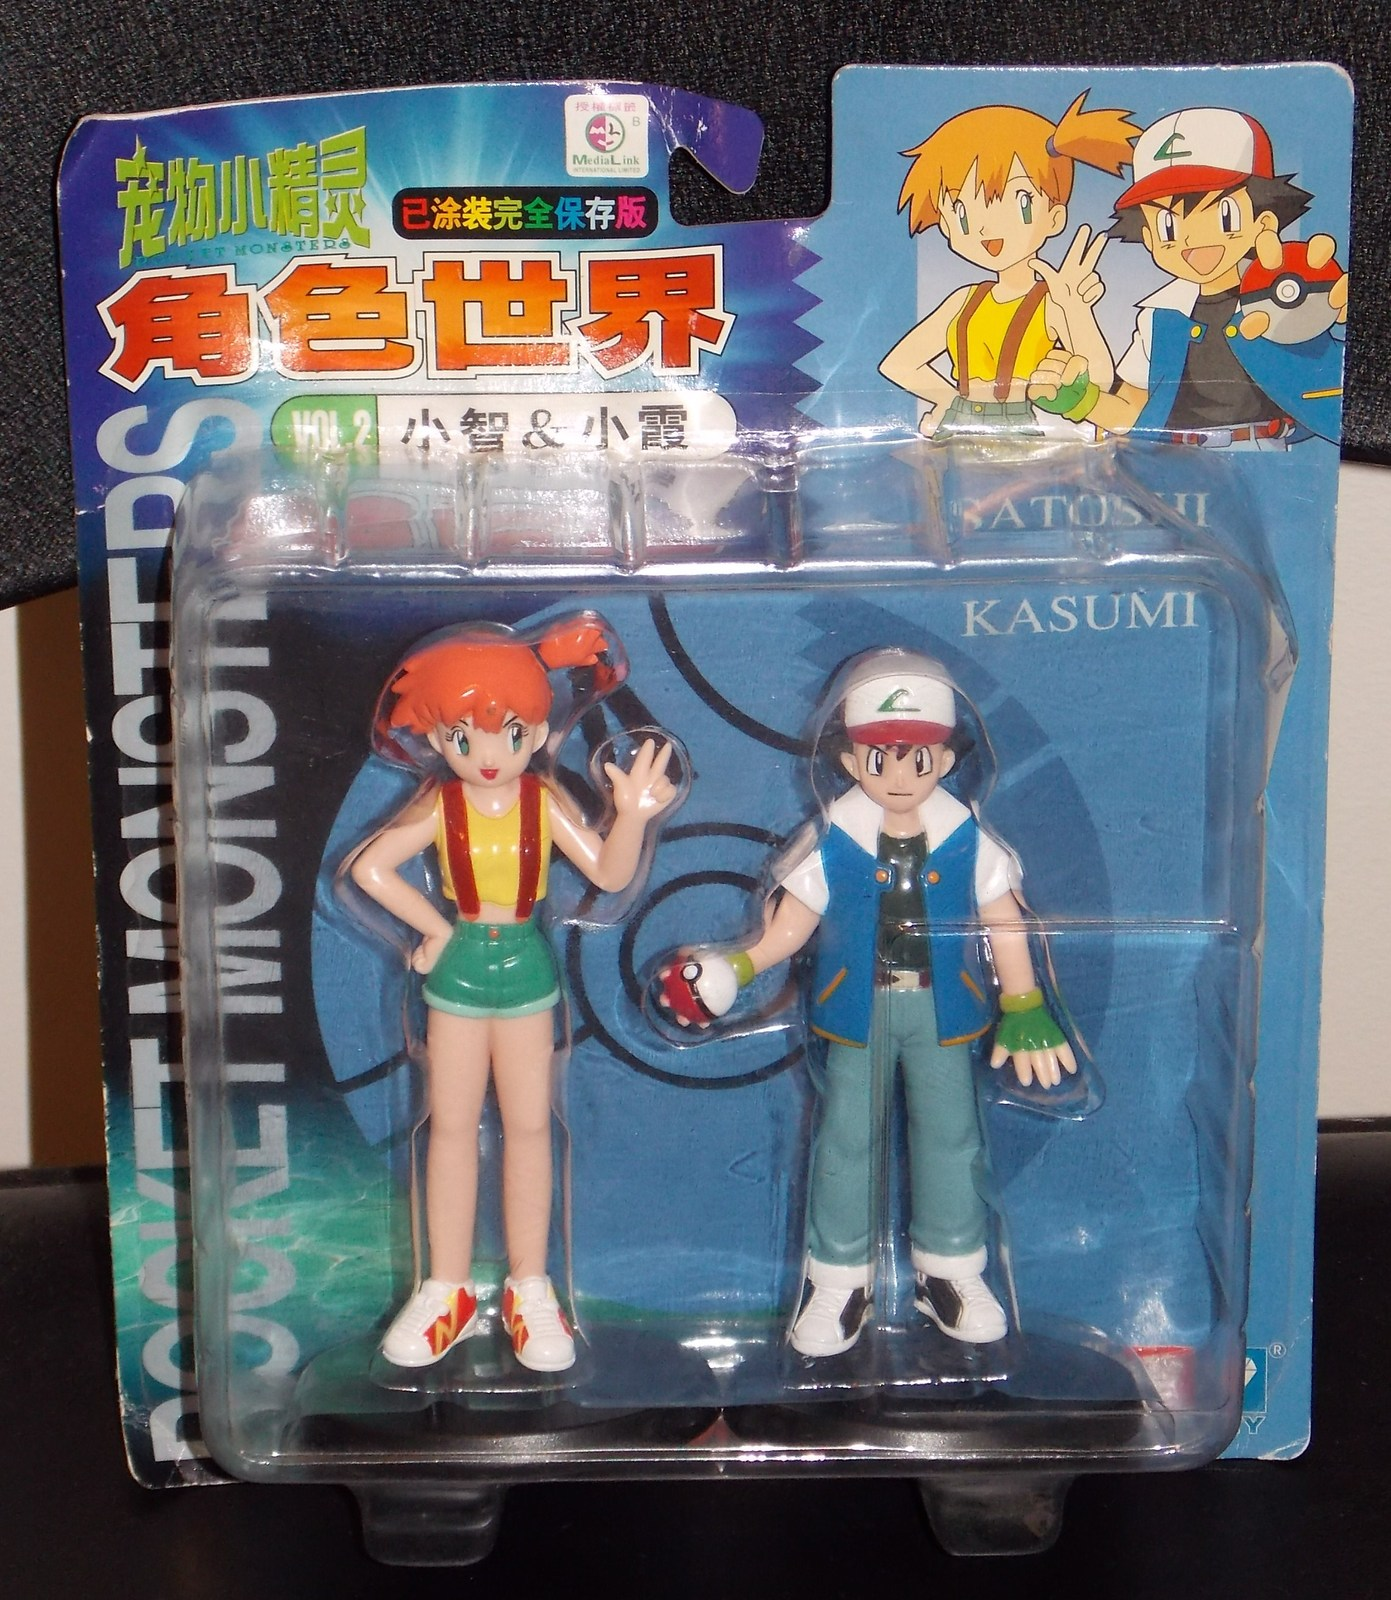 1998 Pokemon Pocket Monsters Satoshi & Kasumi 2 Pack Figures New In The Package - $59.99